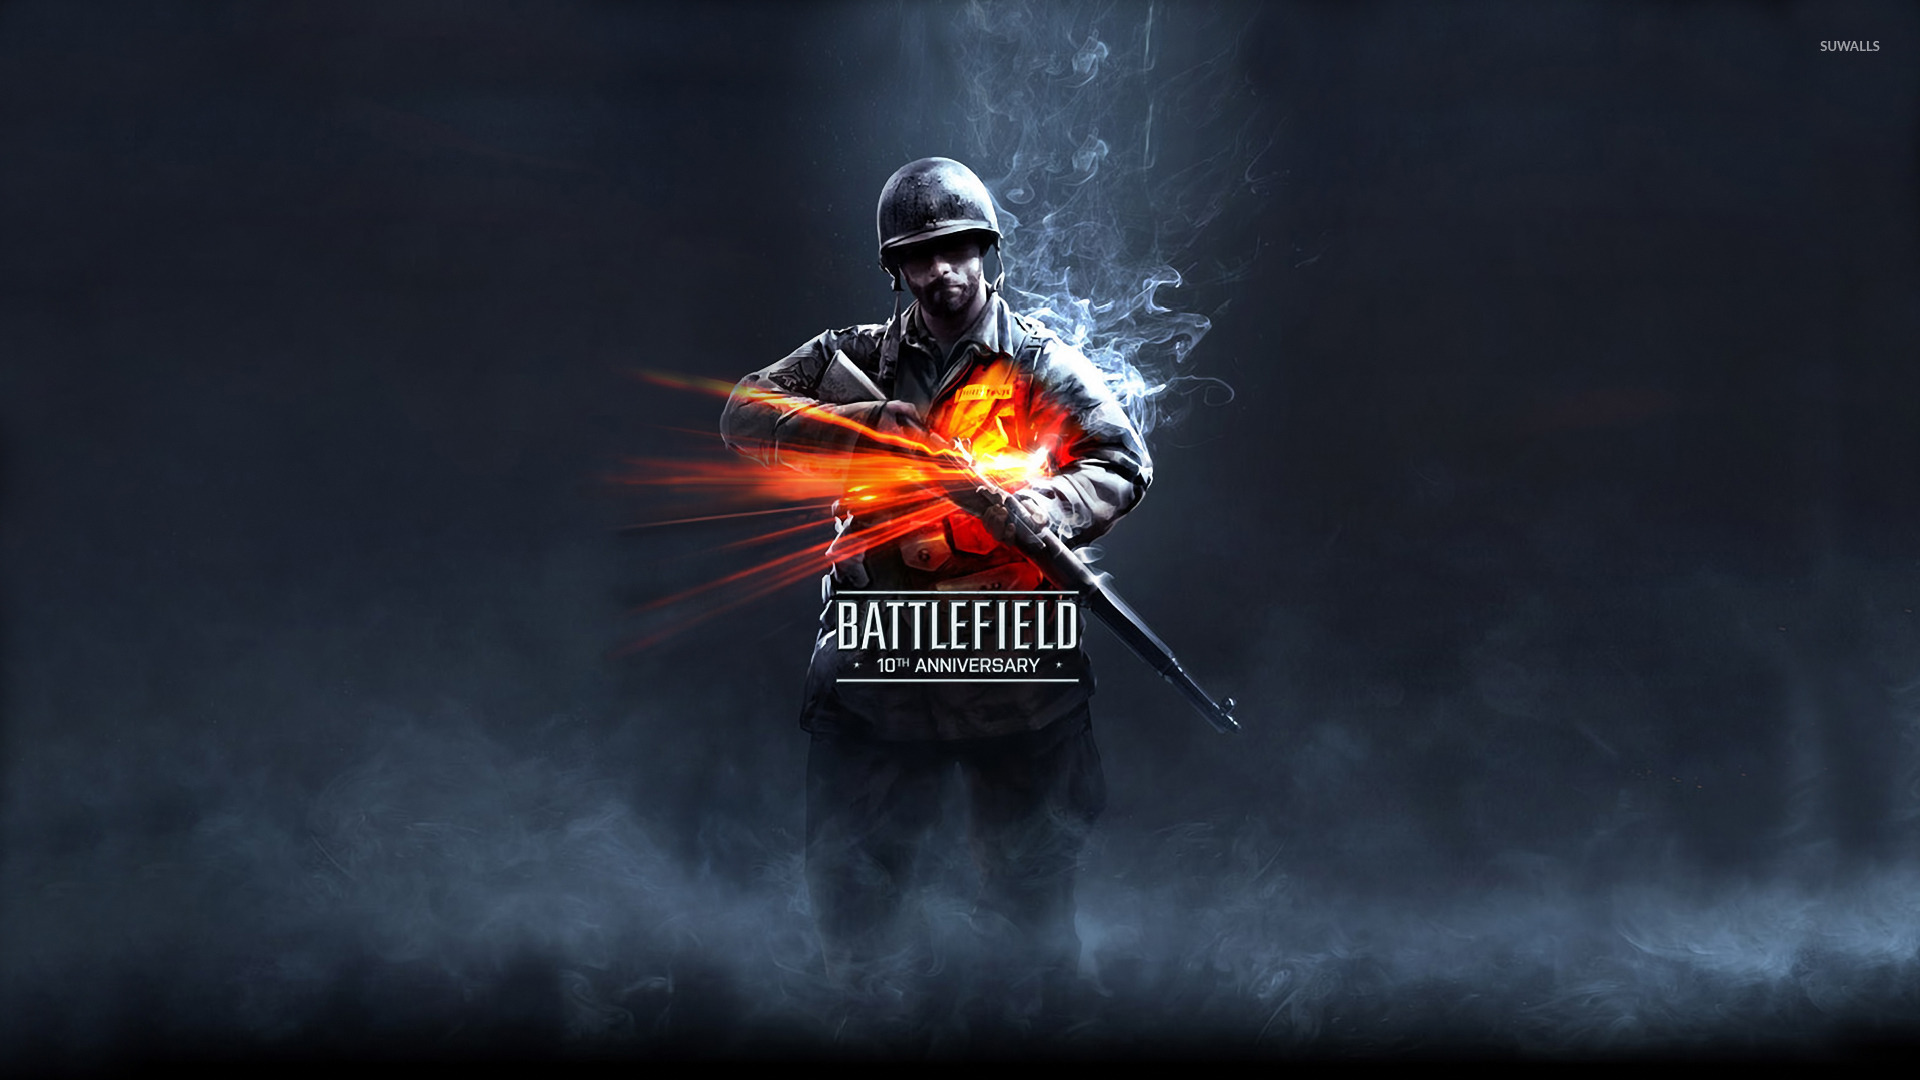 Battlefield Vietnam 10th Anniversary Wallpaper Game